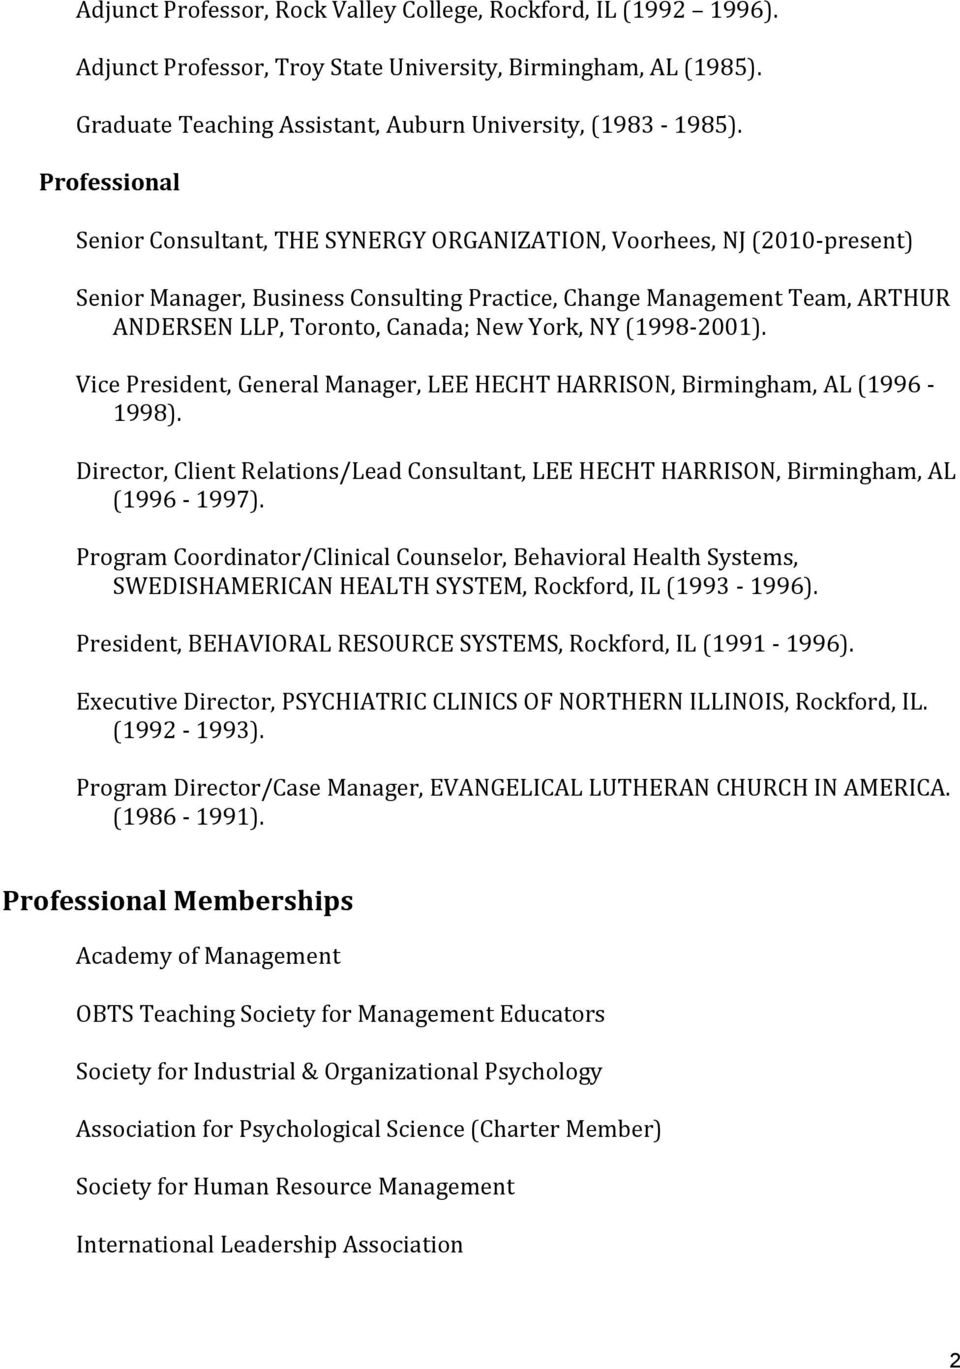 York, NY (1998-2001). Vice President, General Manager, LEE HECHT HARRISON, Birmingham, AL (1996-1998). Director, Client Relations/Lead Consultant, LEE HECHT HARRISON, Birmingham, AL (1996-1997).